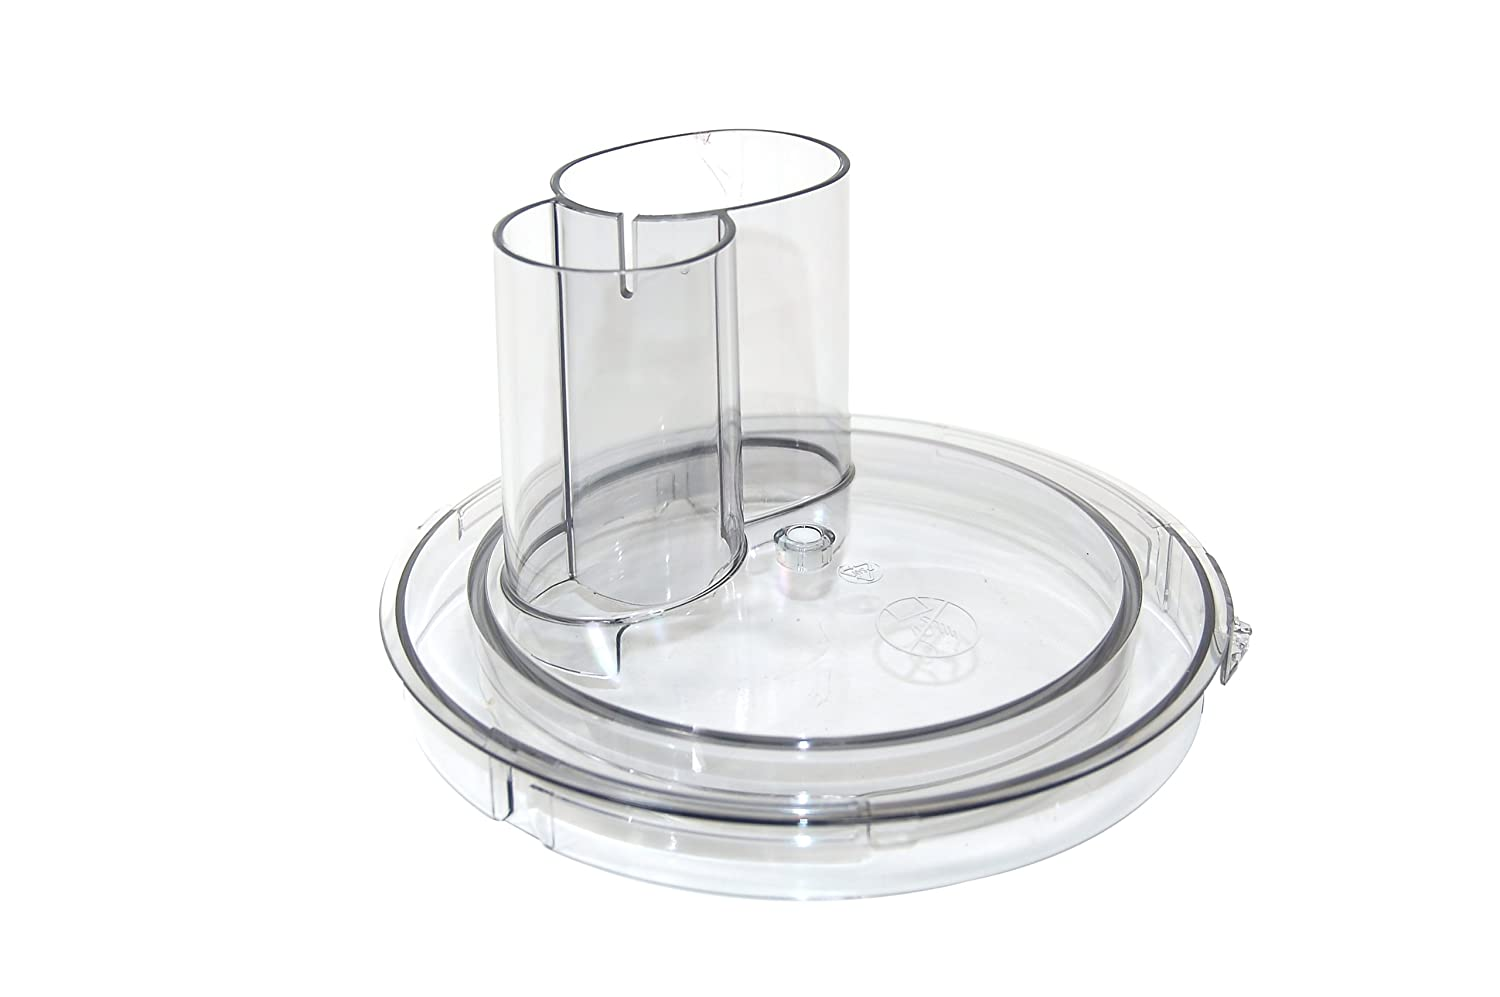 Bosch 489136 Food Processor Lid